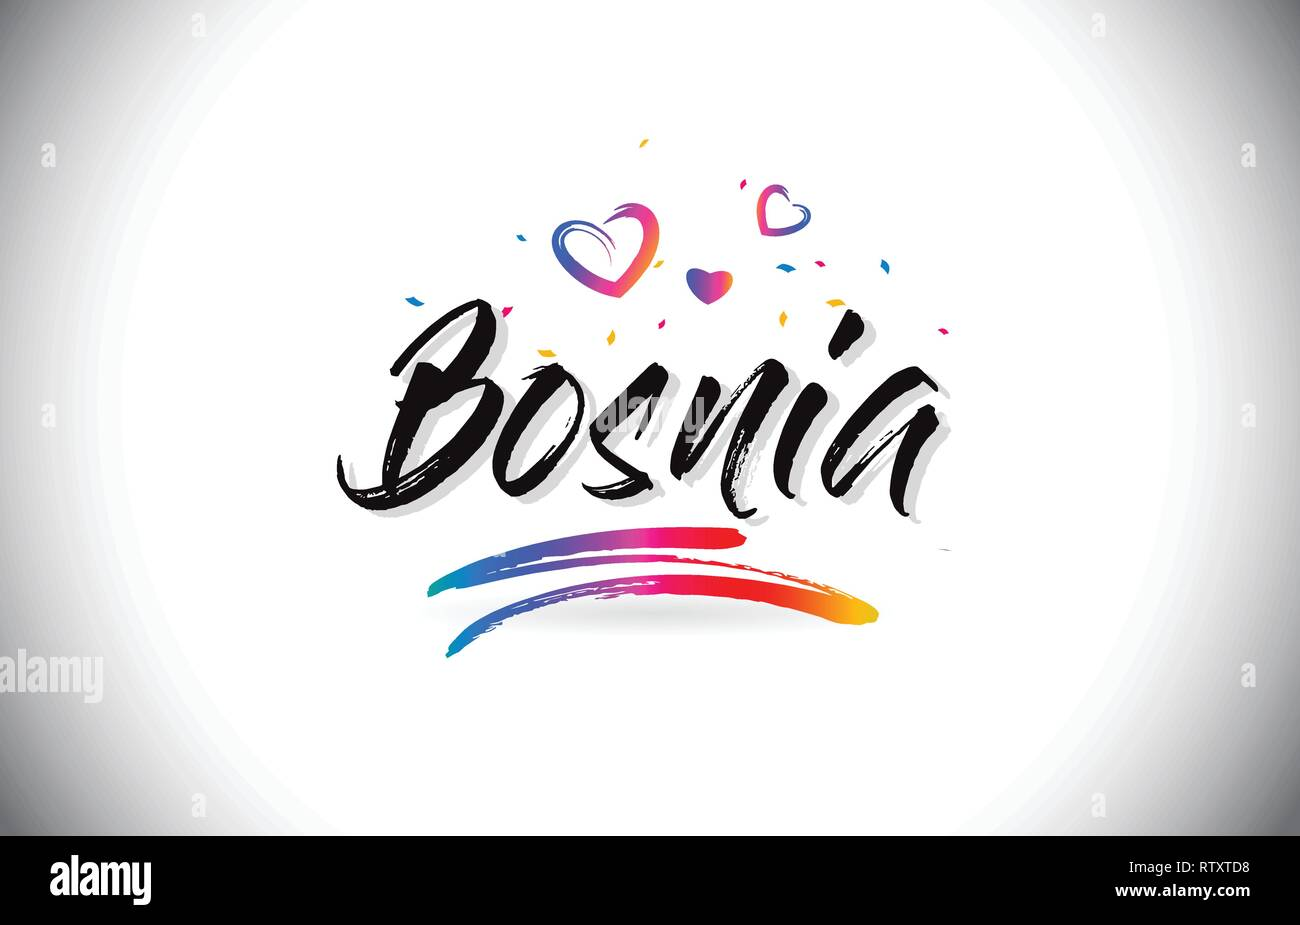 Bosnia Welcome To Word Text with Love Hearts and Creative Handwritten Font Design Vector Illustration. - Stock Vector